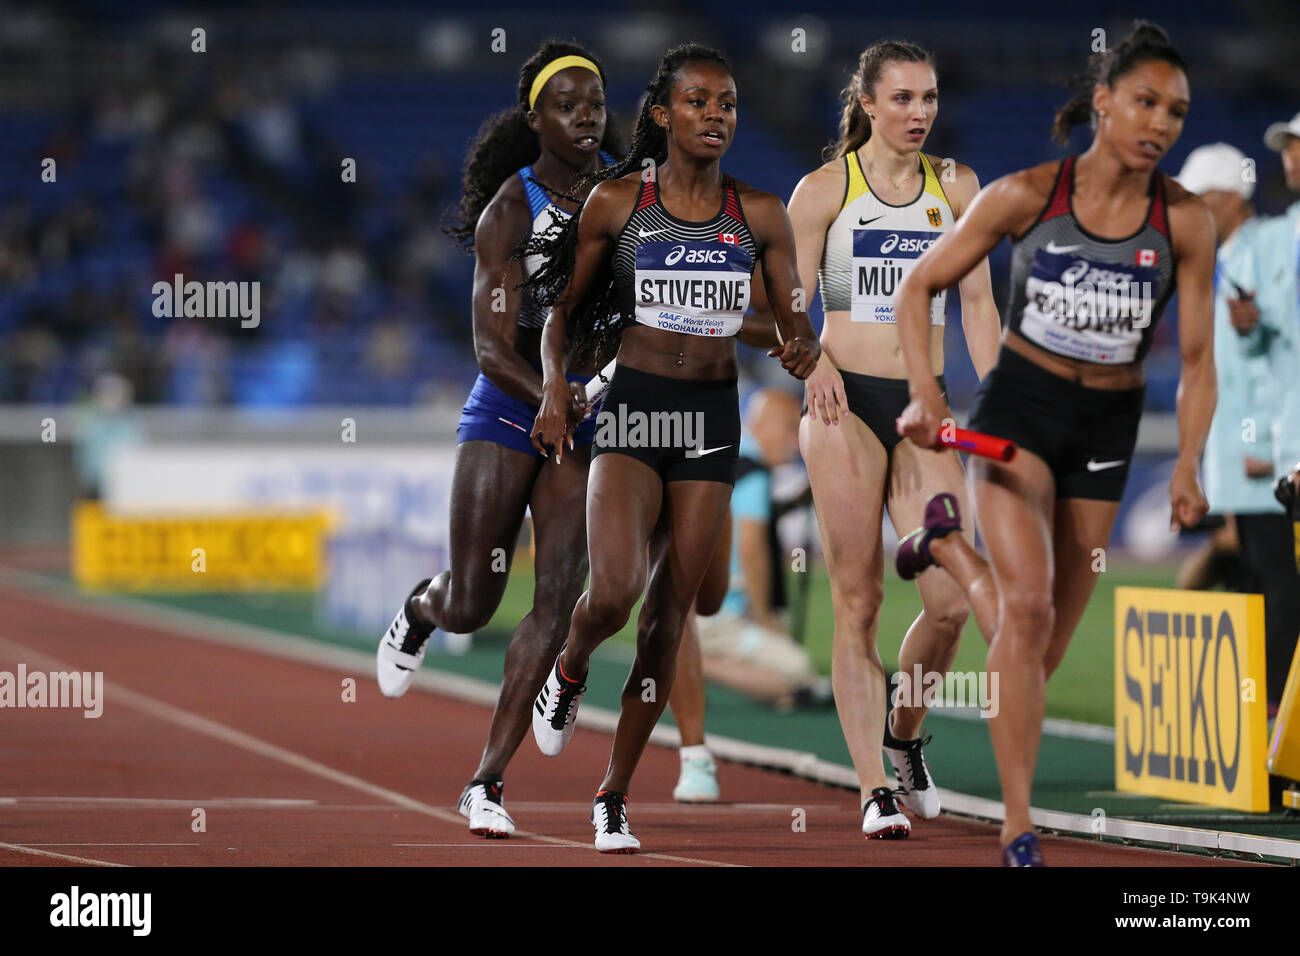 YOKOHAMA, JAPAN - MAY 10: Aiyanna Stiverne of Canada during Day 1 of the 2019 IAAF World Relay Championships at the Nissan Stadium on Saturday May 11, 2019 in Yokohama, Japan. (Photo by Roger Sedres for the IAAF) - Stock Image